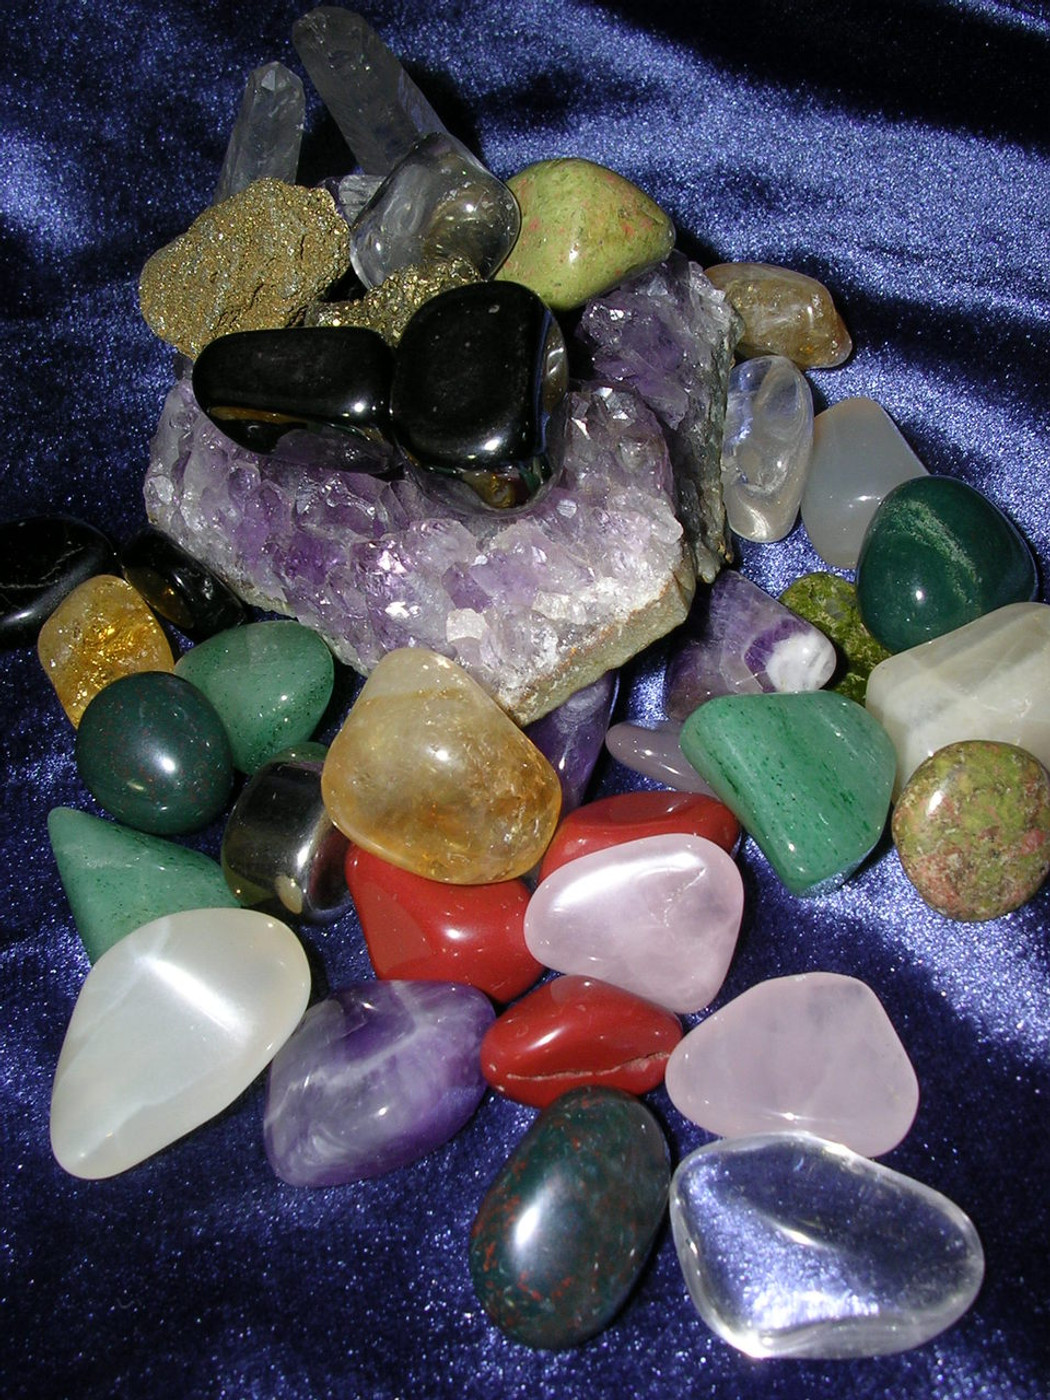 3 Magick Moonstones Radiate Calming Energy and Boost Intuition